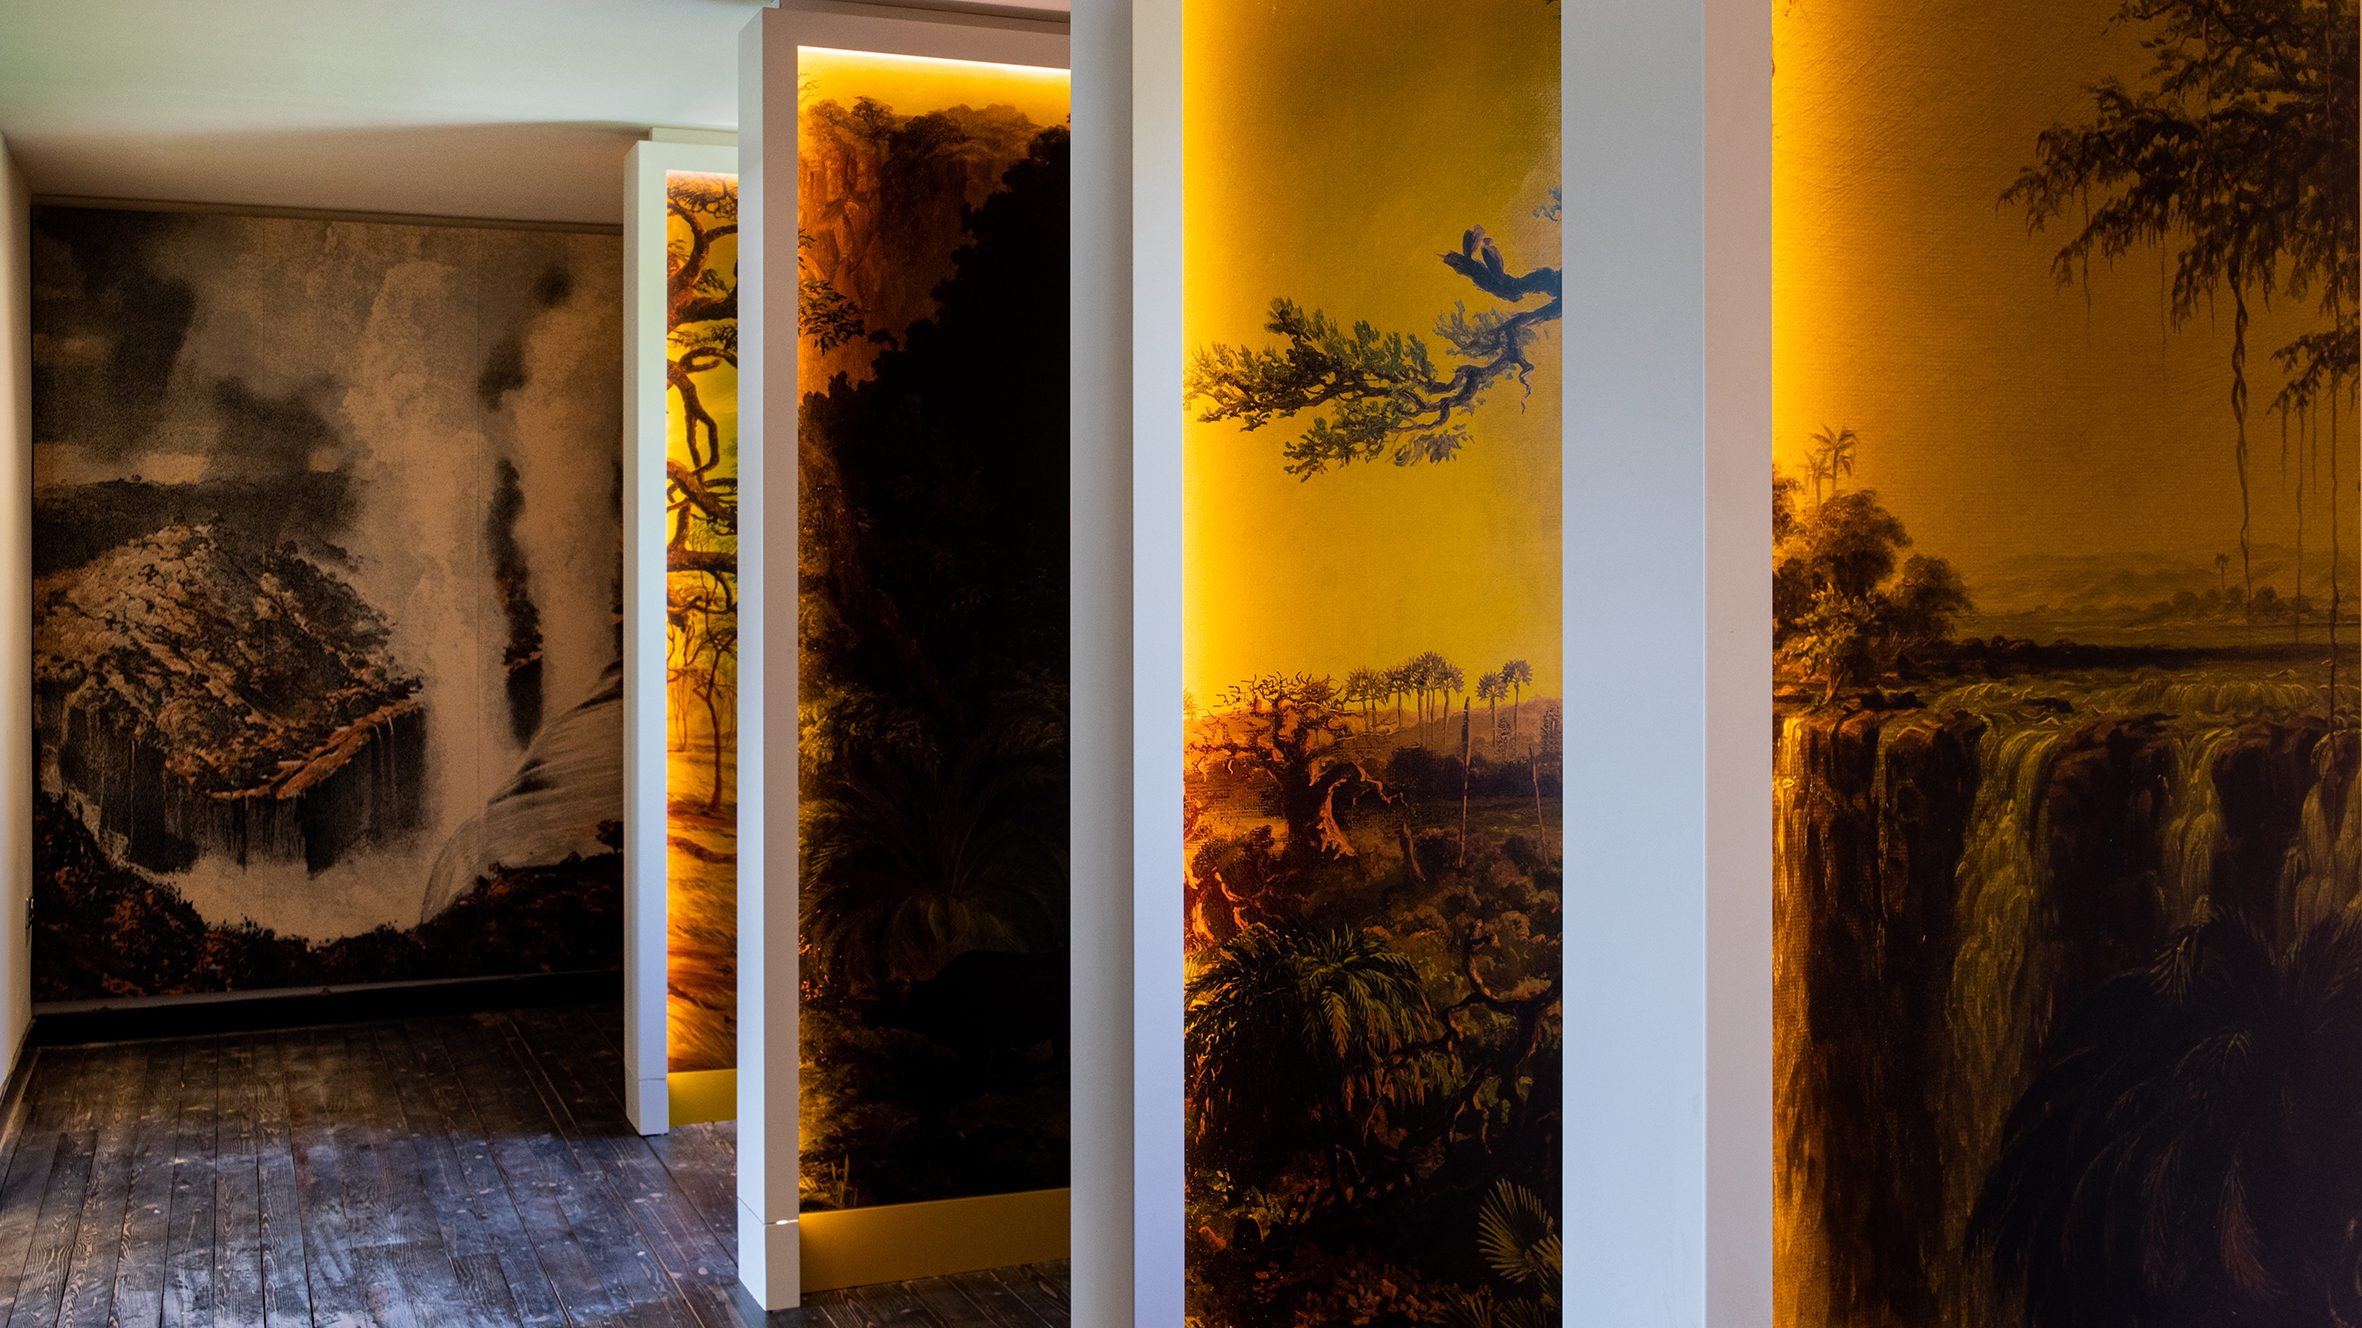 The Trans-Africa Expedition Room at the David Livingstone Birthplace Museum, Blantyre, South Lanarkshire